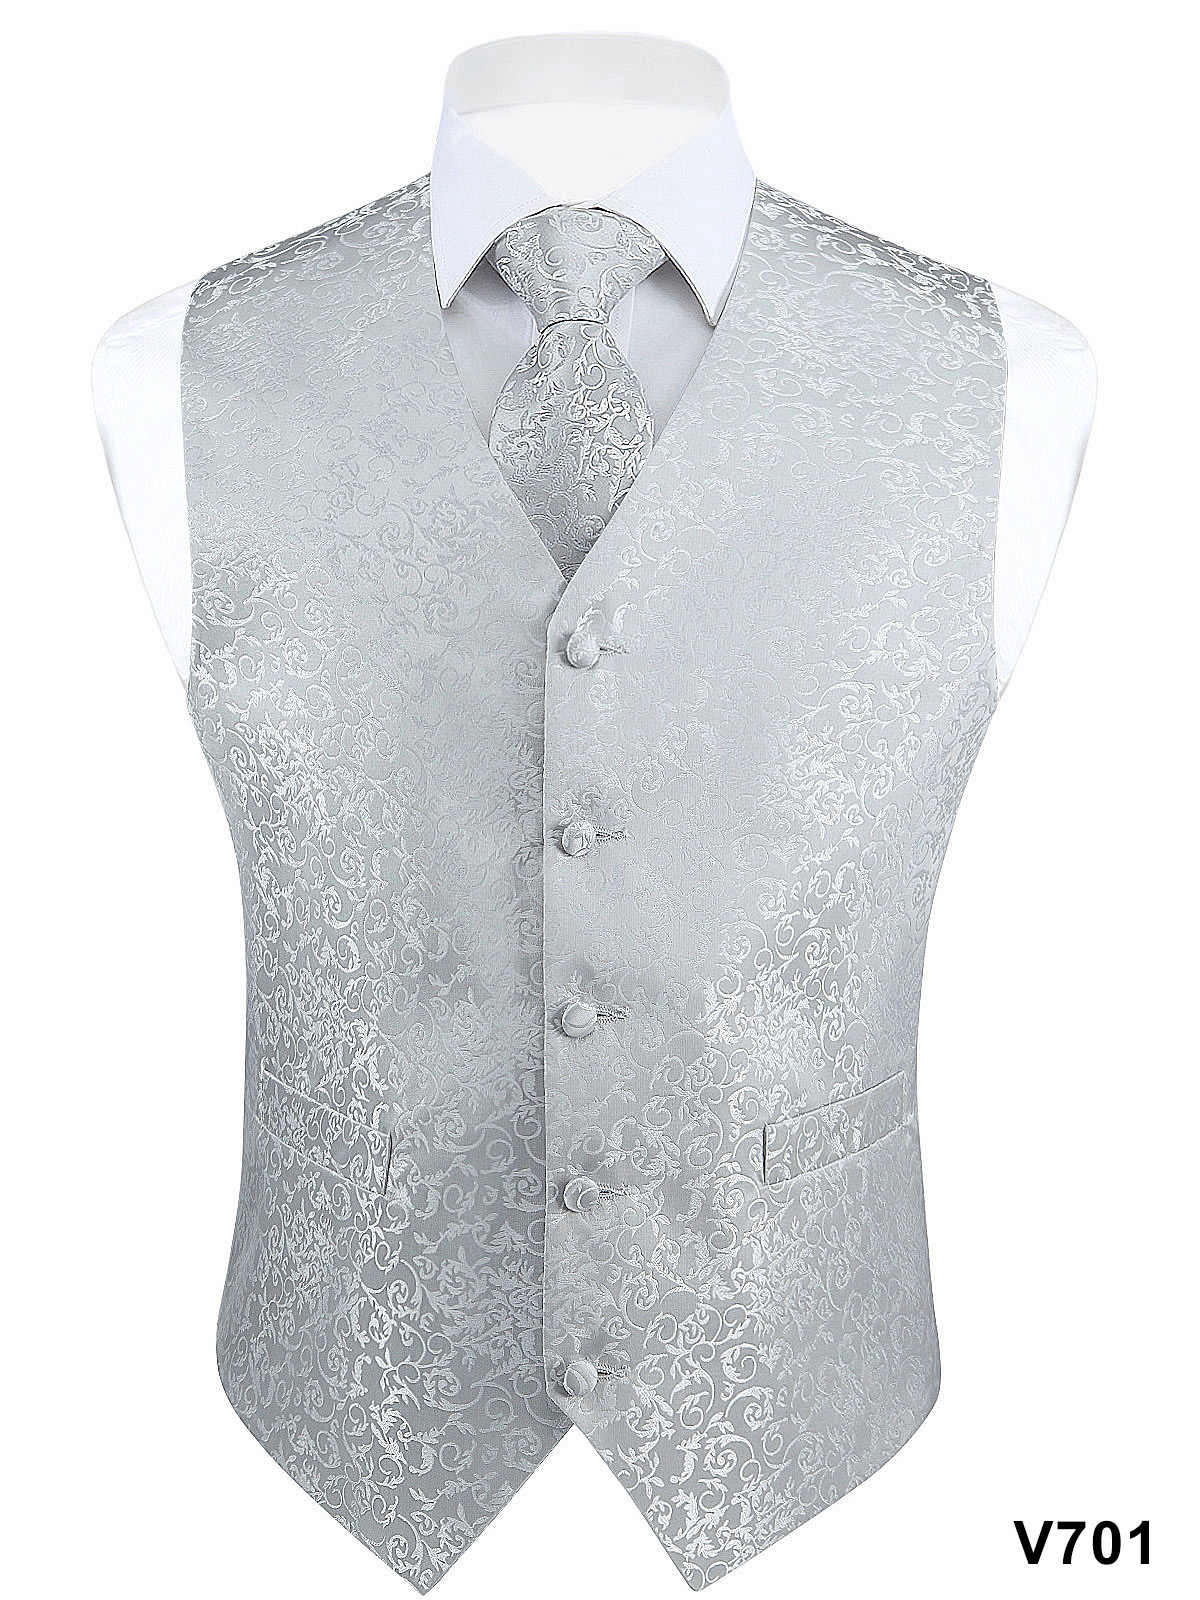 Mode Kleur mannen Wedding Party Paisley Jurk Vest Casual Tuxedo Vest Tie Pocket Plein Pak Set